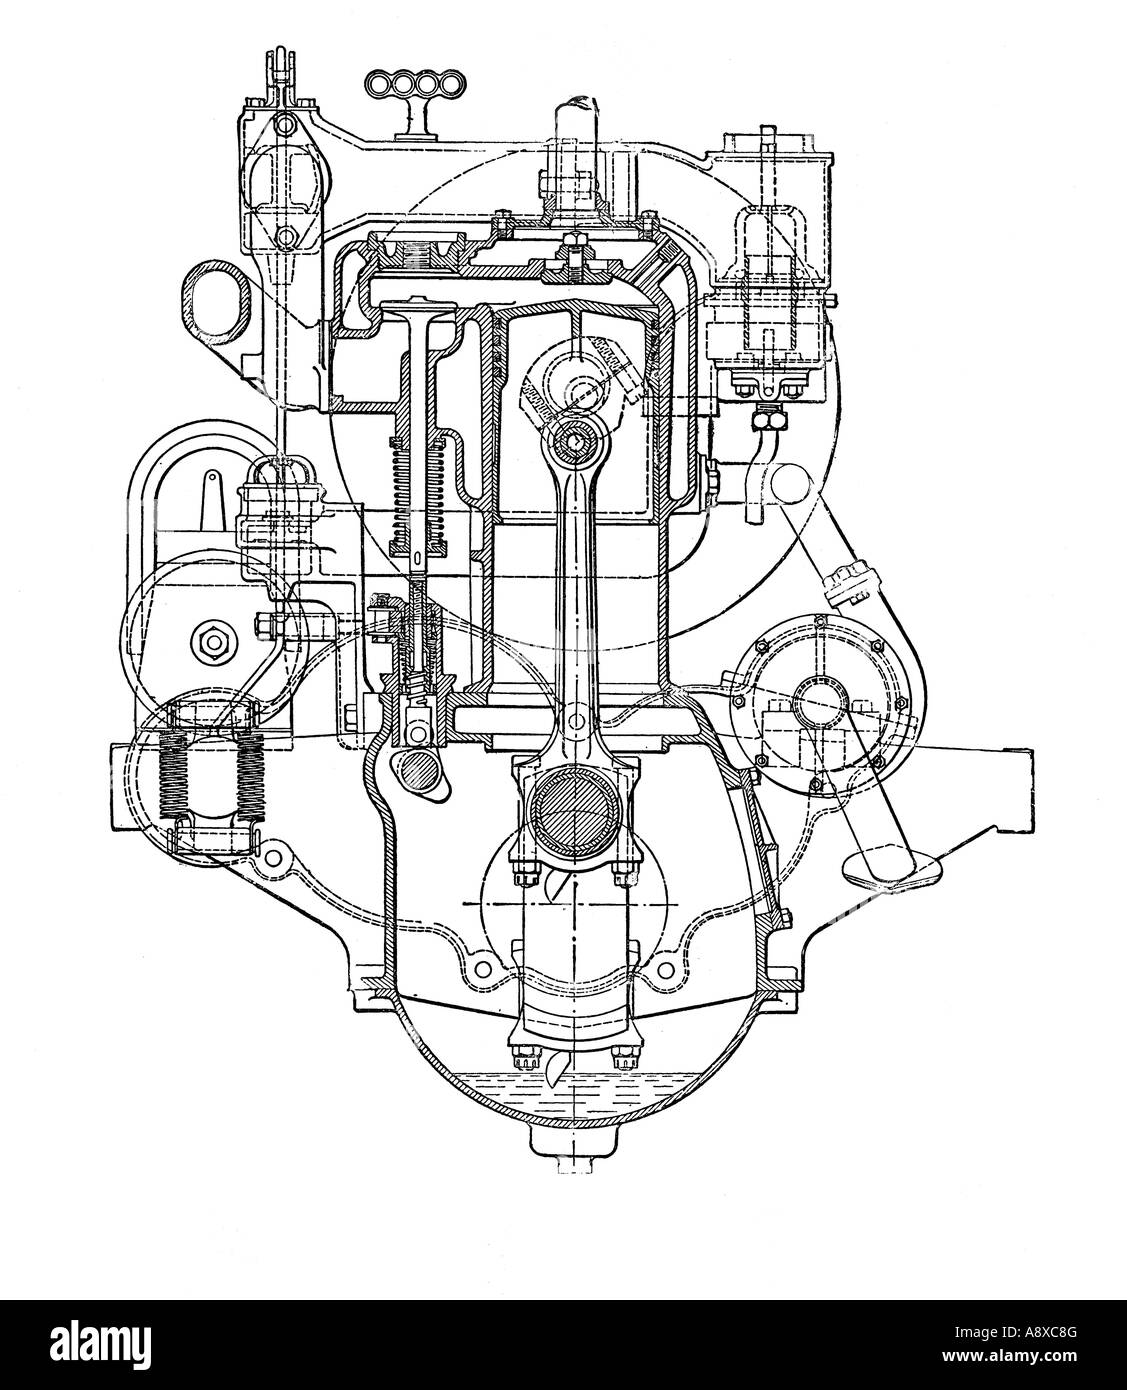 Small Gasoline Engine Diagram Wiring Library Images Pictures Becuo Cross Section Of Siddeley Four Cylinder Petrol Stock Image